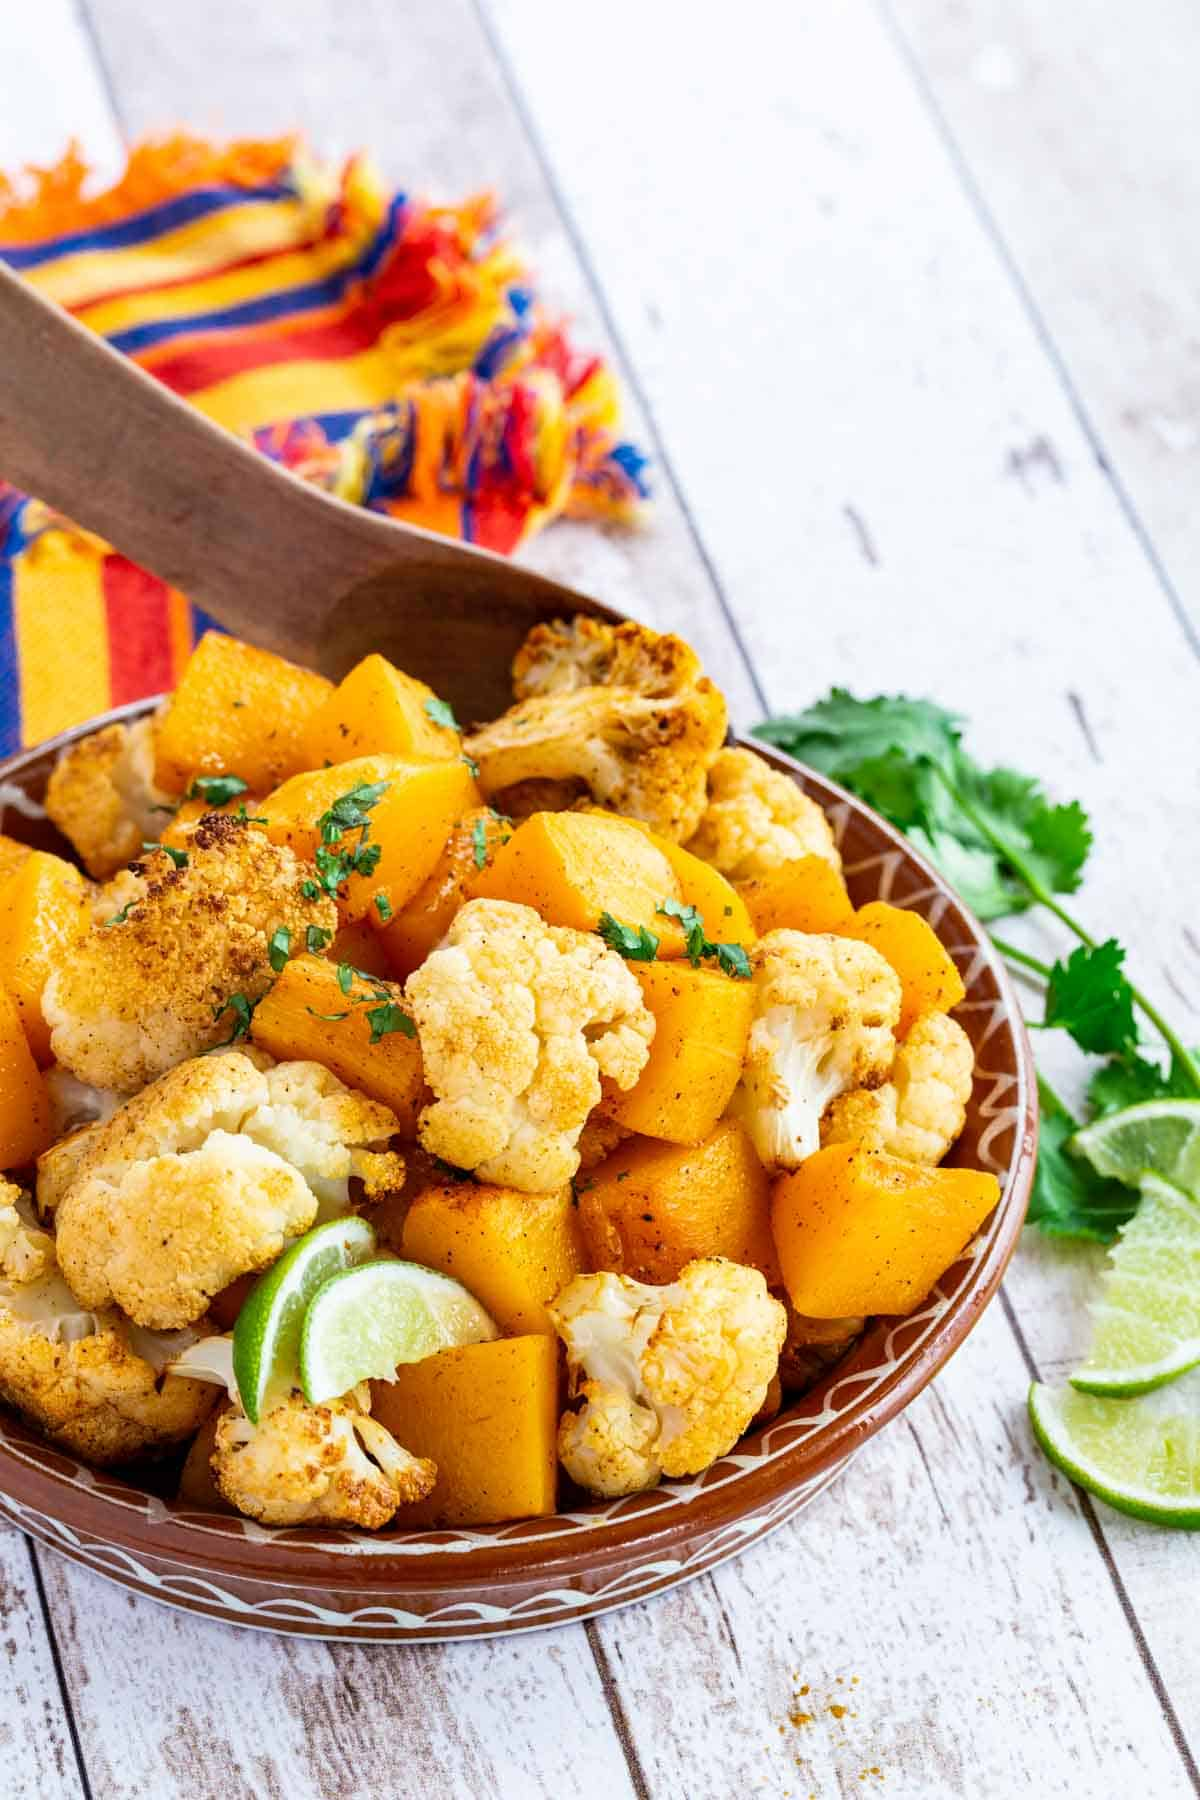 wooden spoon resting in a clad dish of roasted butternut squash and cauliflower florets garnished with lime wedges and cilantro